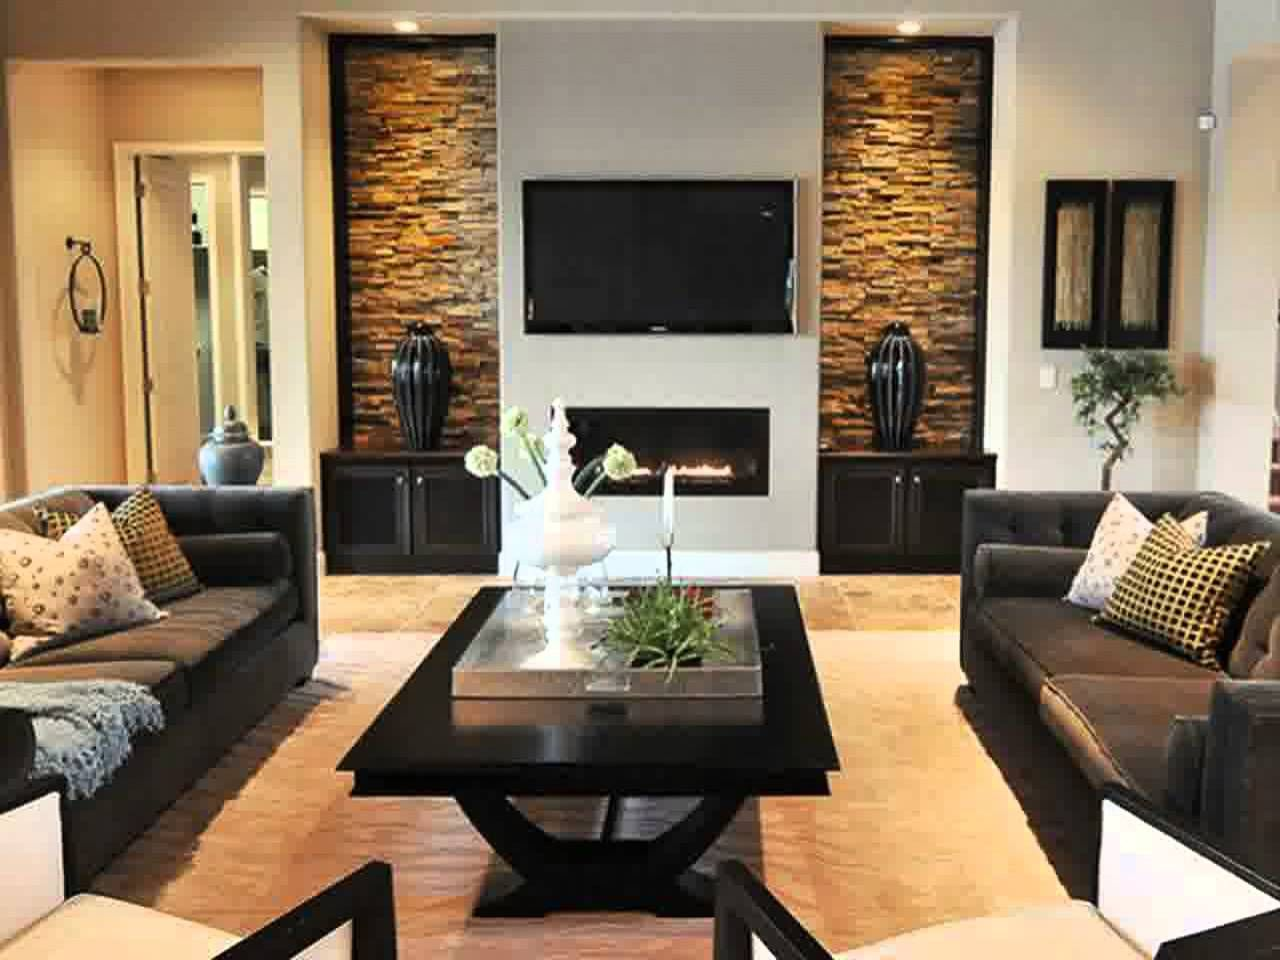 Living Room Ideas With Brick Fireplace And Tv Deck Shed Shabby